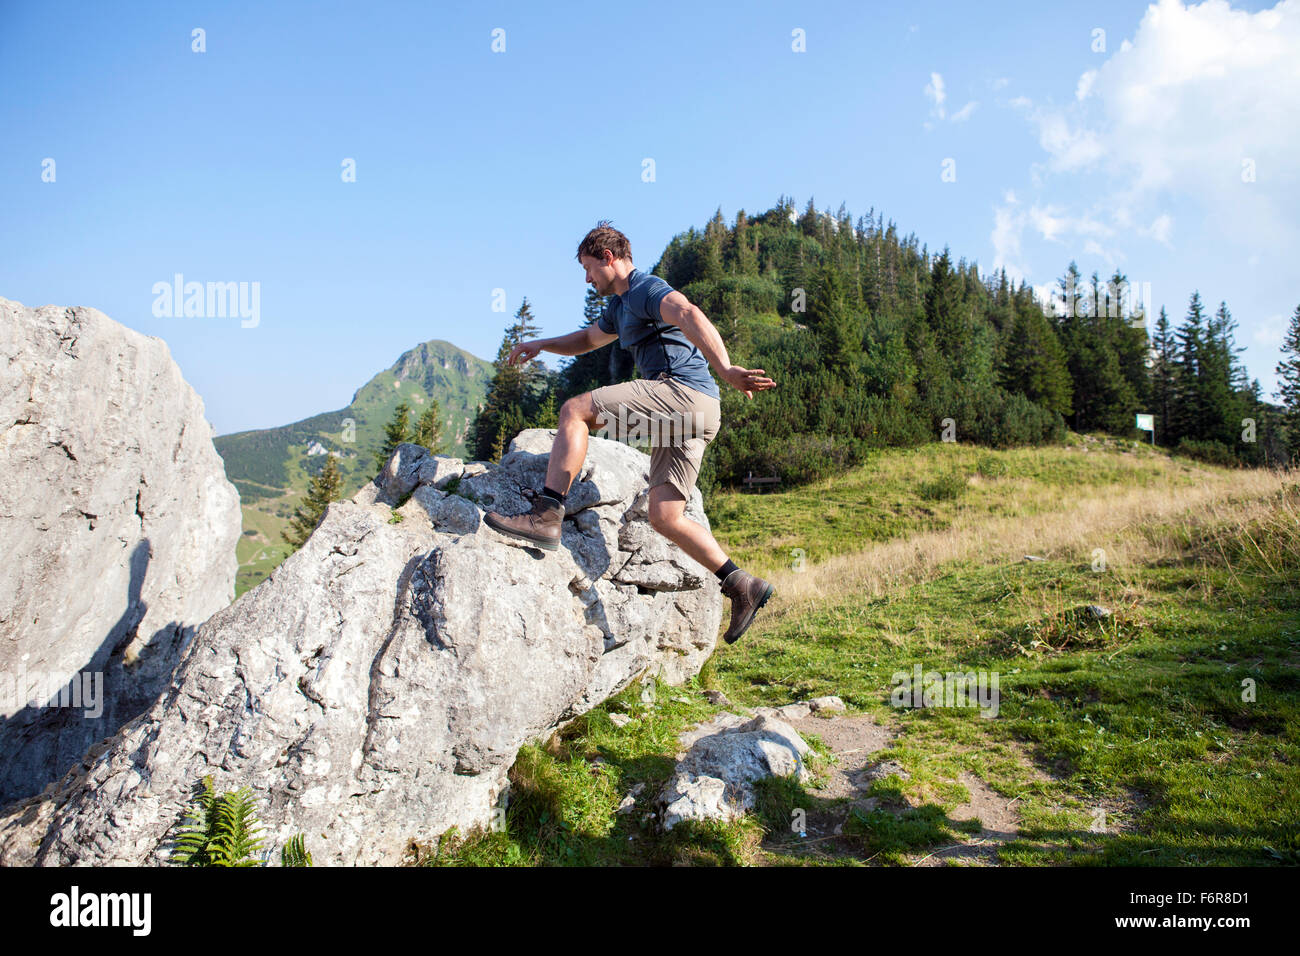 Young man hiking in mountain landscape - Stock Image